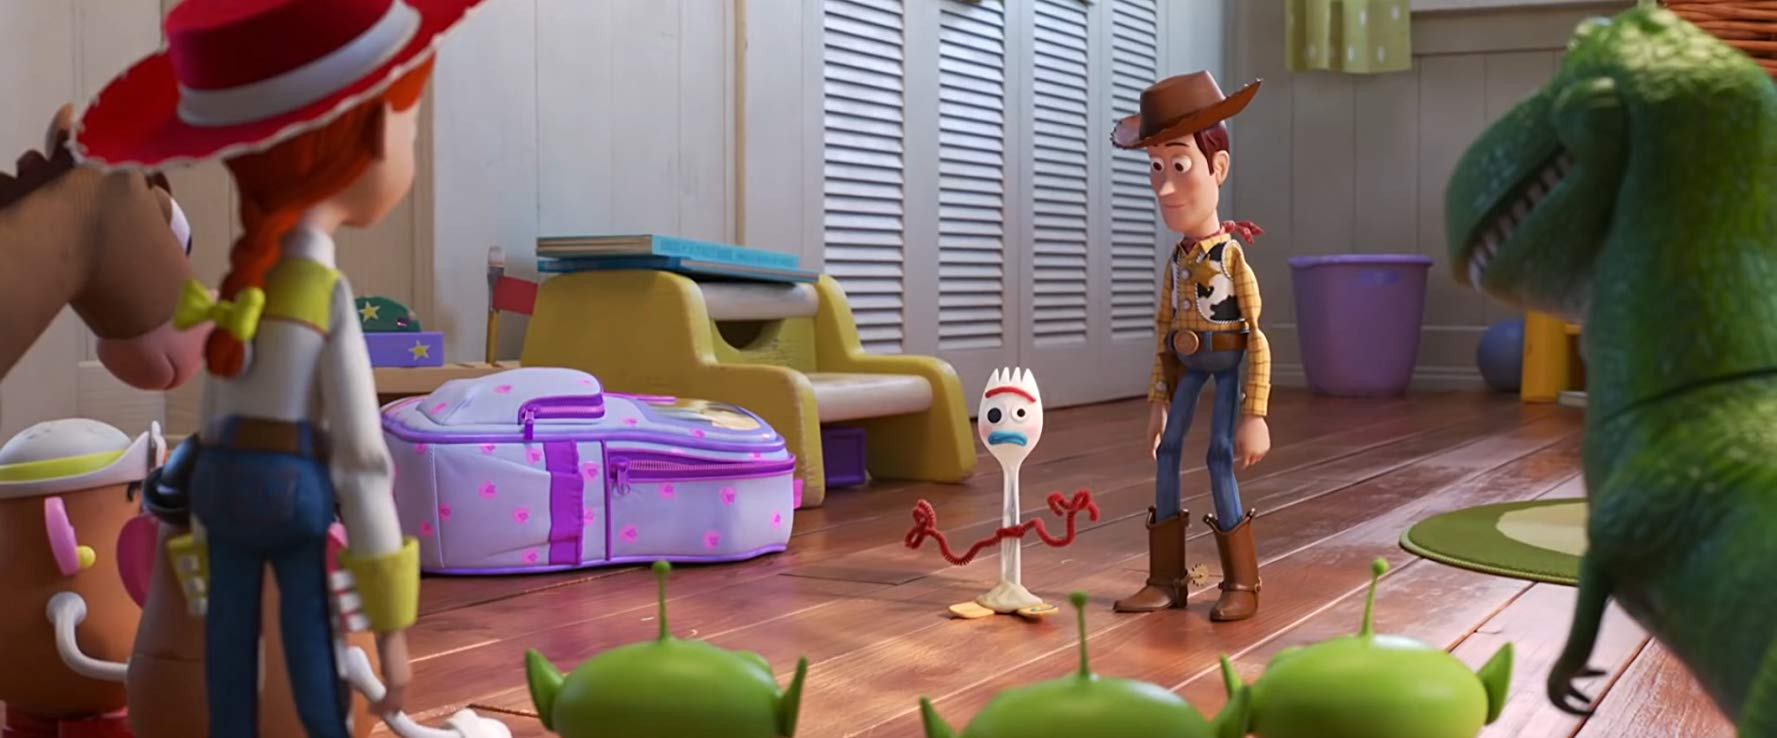 "Tom Hanks and Tony Hale in <a href=""https://entertainment.ie/cinema/movie-reviews/toy-story-4-394195/"">Toy Story 4</a>"